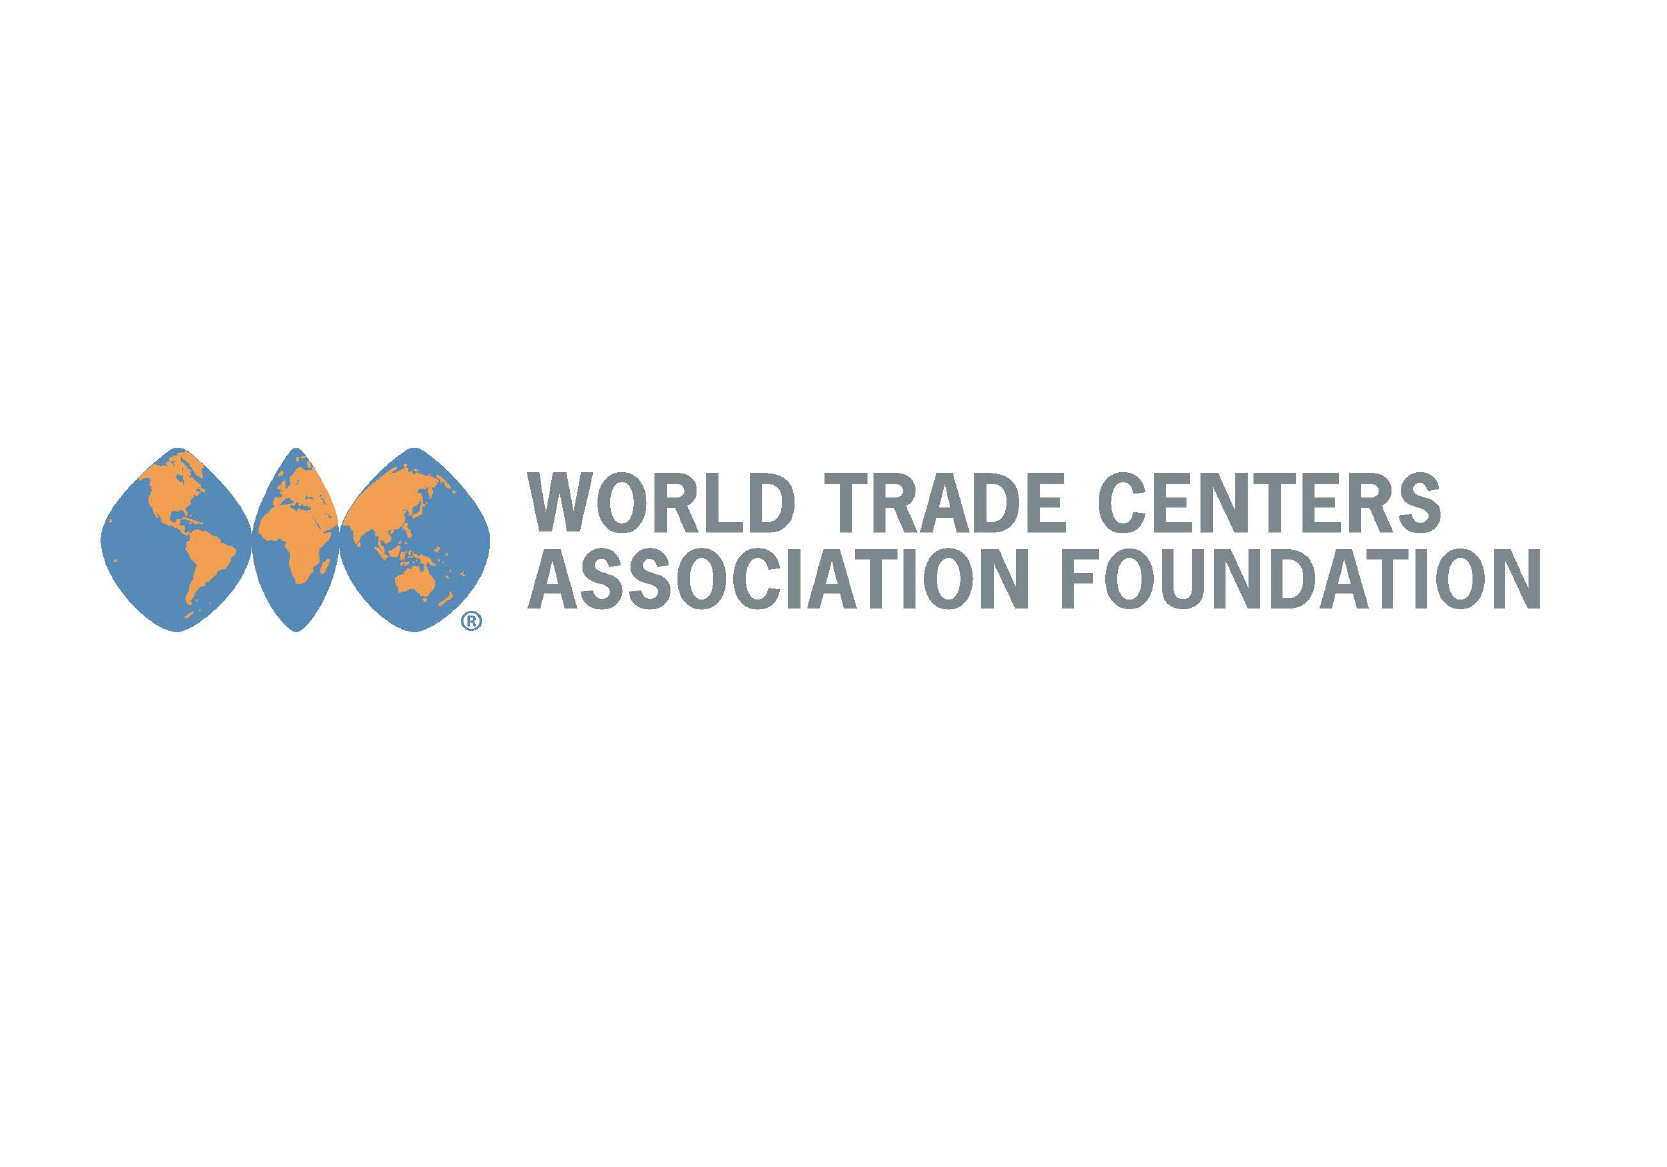 World Trade Centers Association Foundation